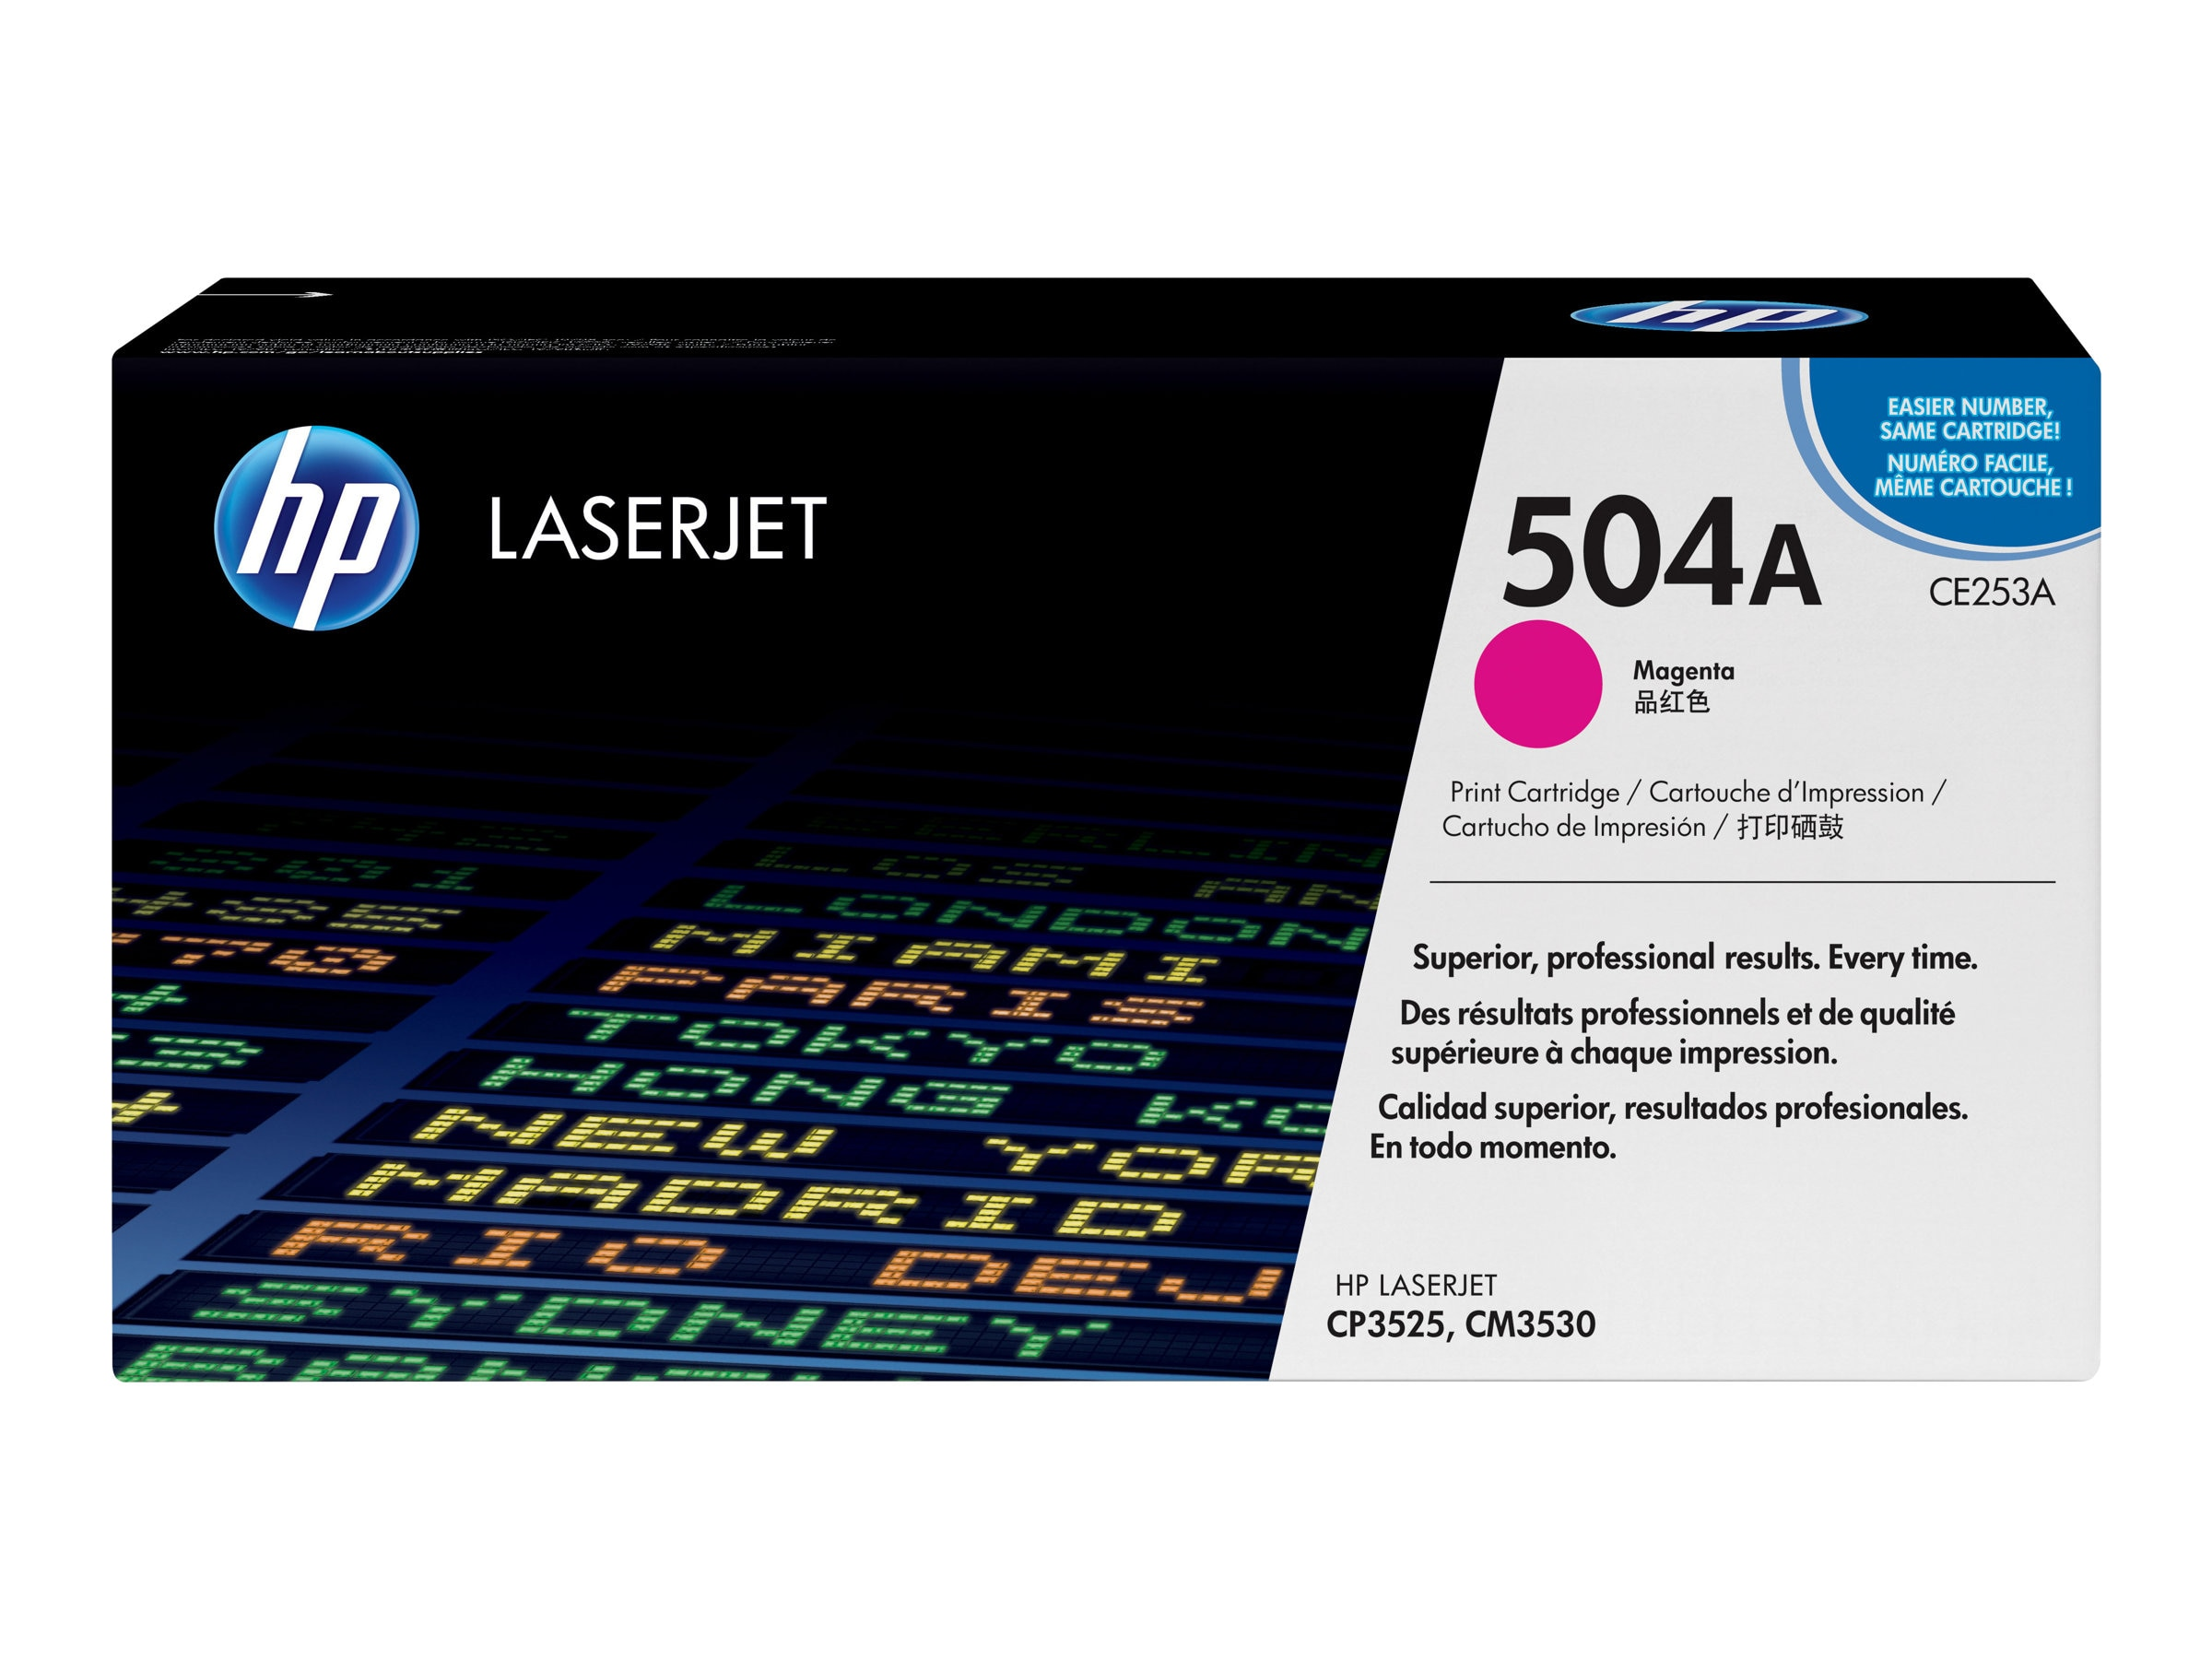 HP 504A (CE253A) Magenta Original LaserJet Toner Cartridge for HP Color LaserJet CP3525 & CM3530 MFP